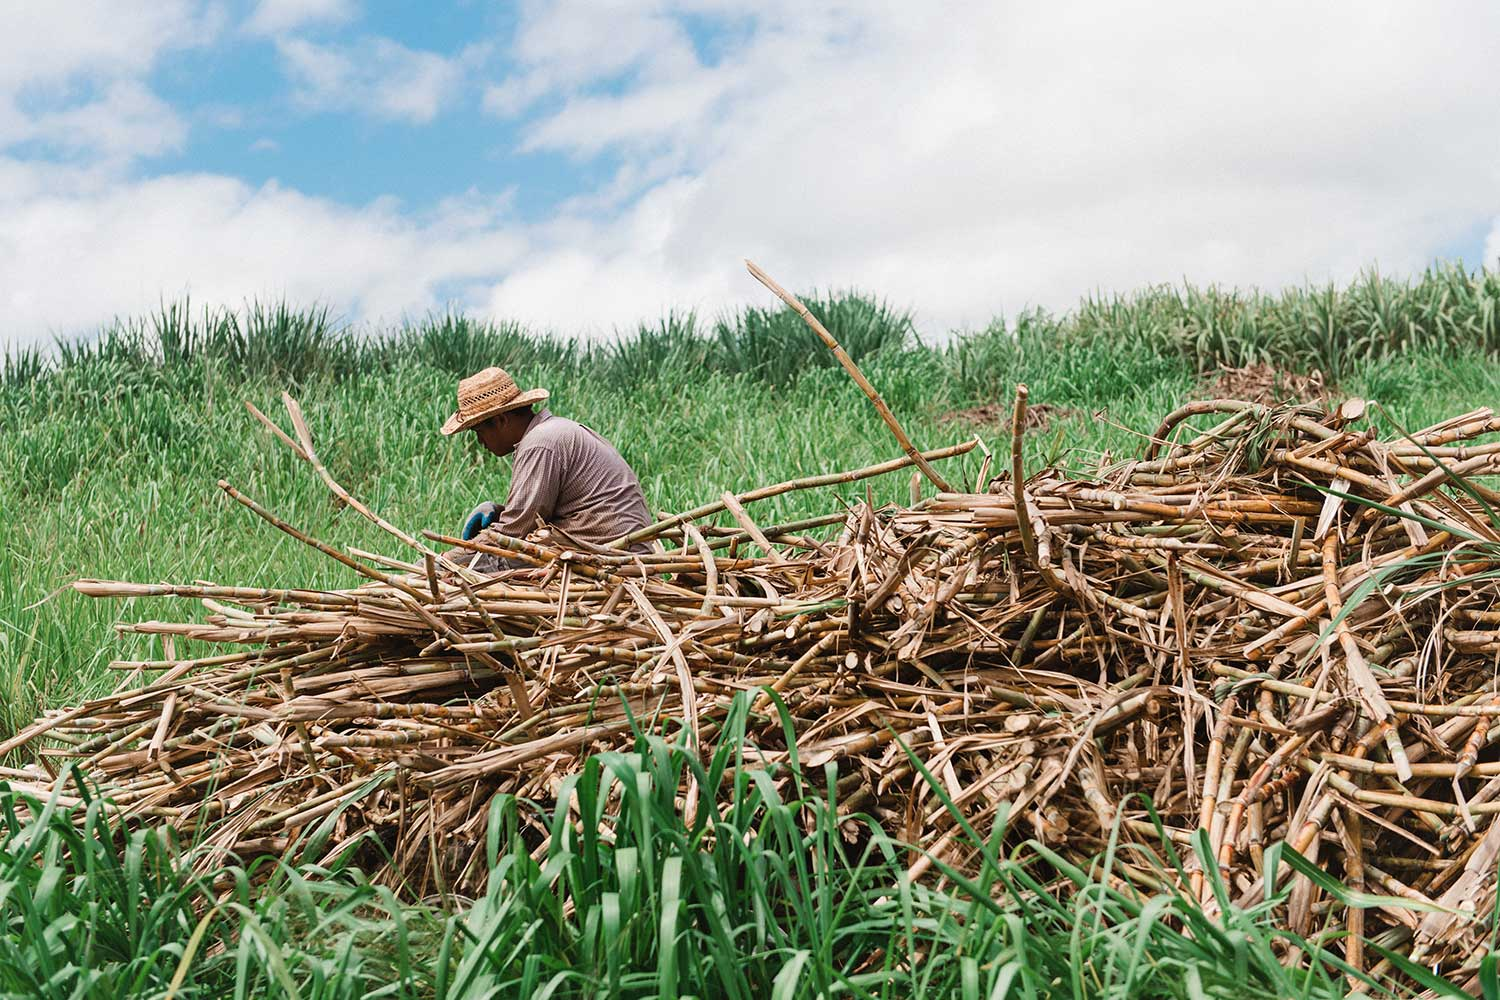 Man in hat working in the sugar cane field